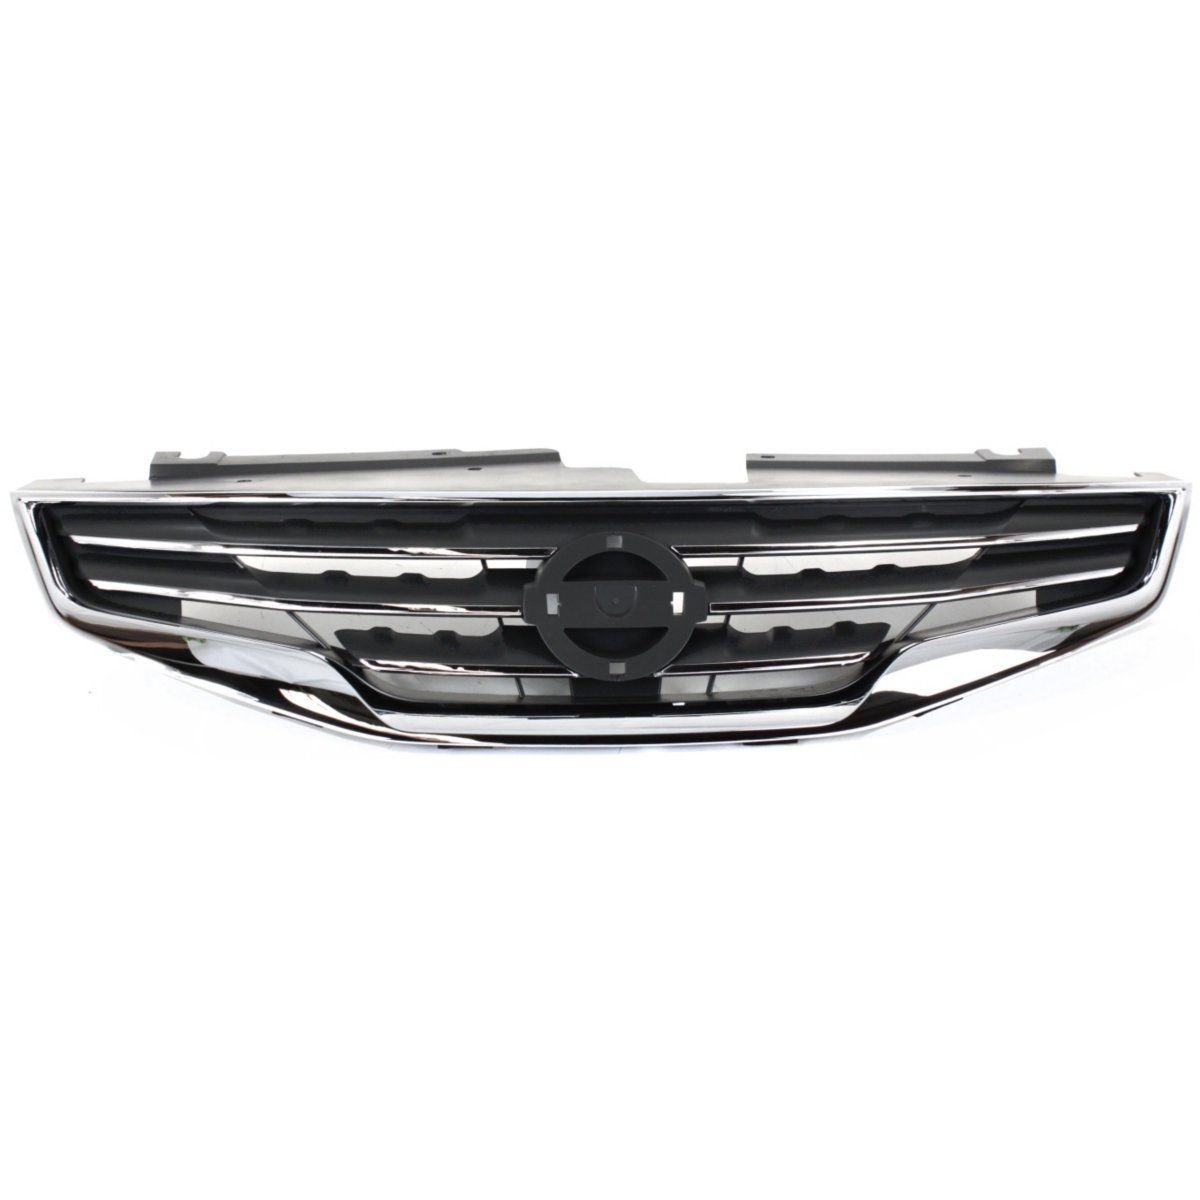 Grille Grill Assembly NI1200236 For Nissan Altima 10-12 SEDAN CHROME Shell with Black Insert